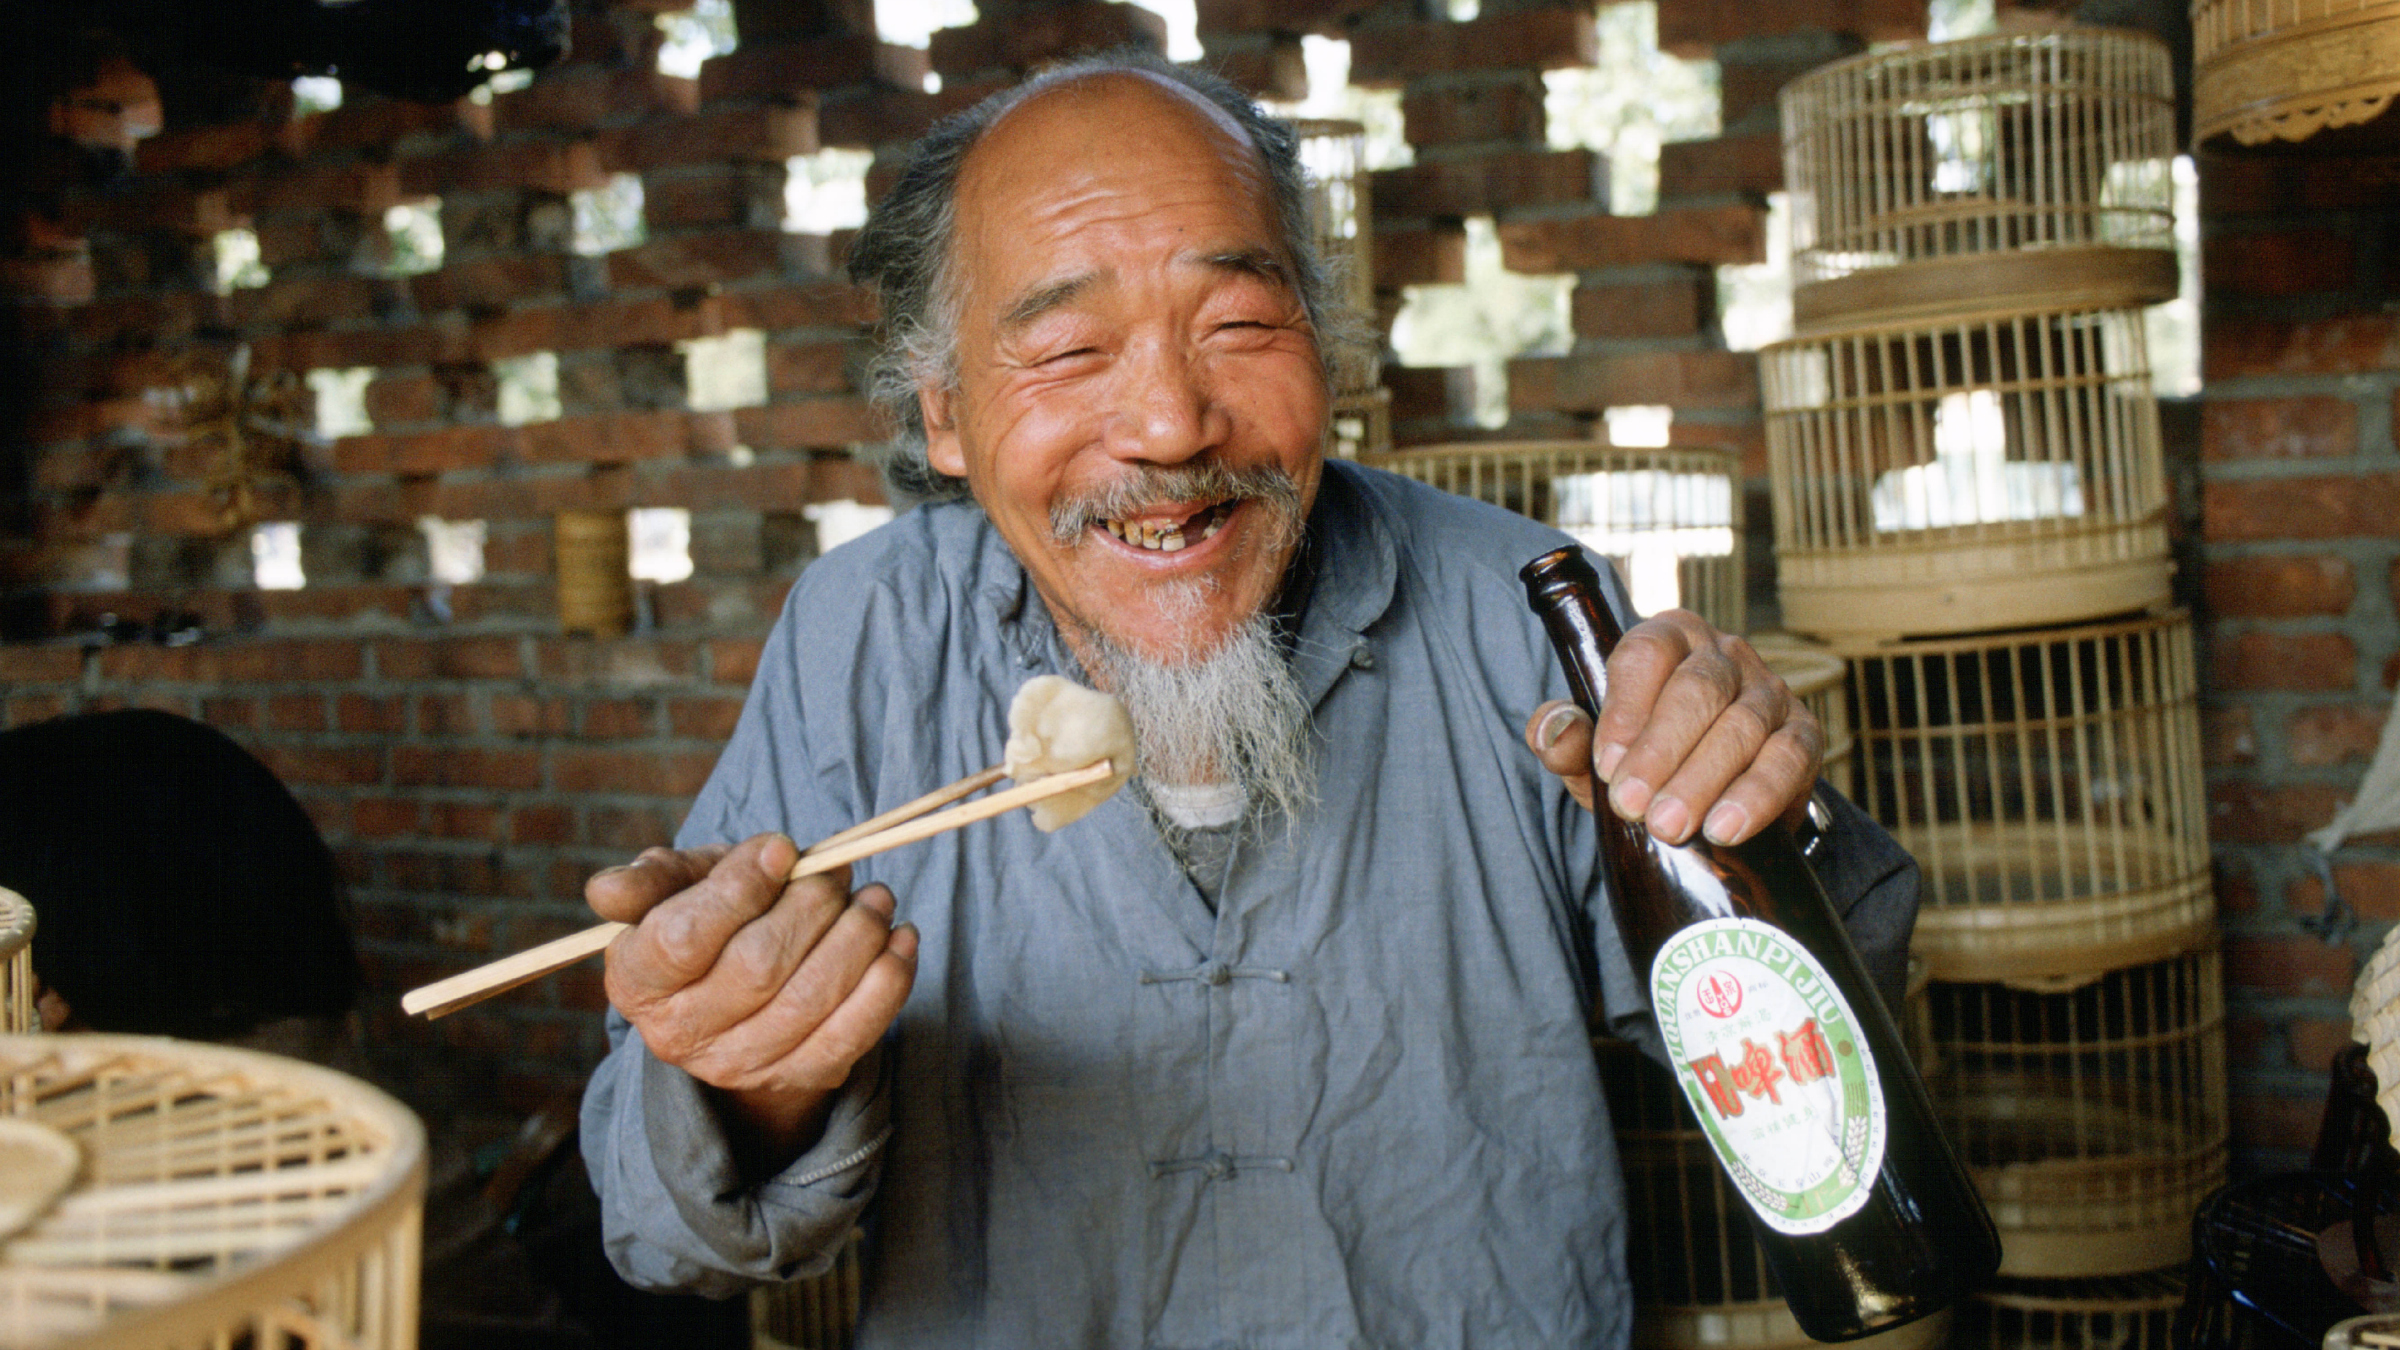 Man eating with chopsticks and drinking beer.